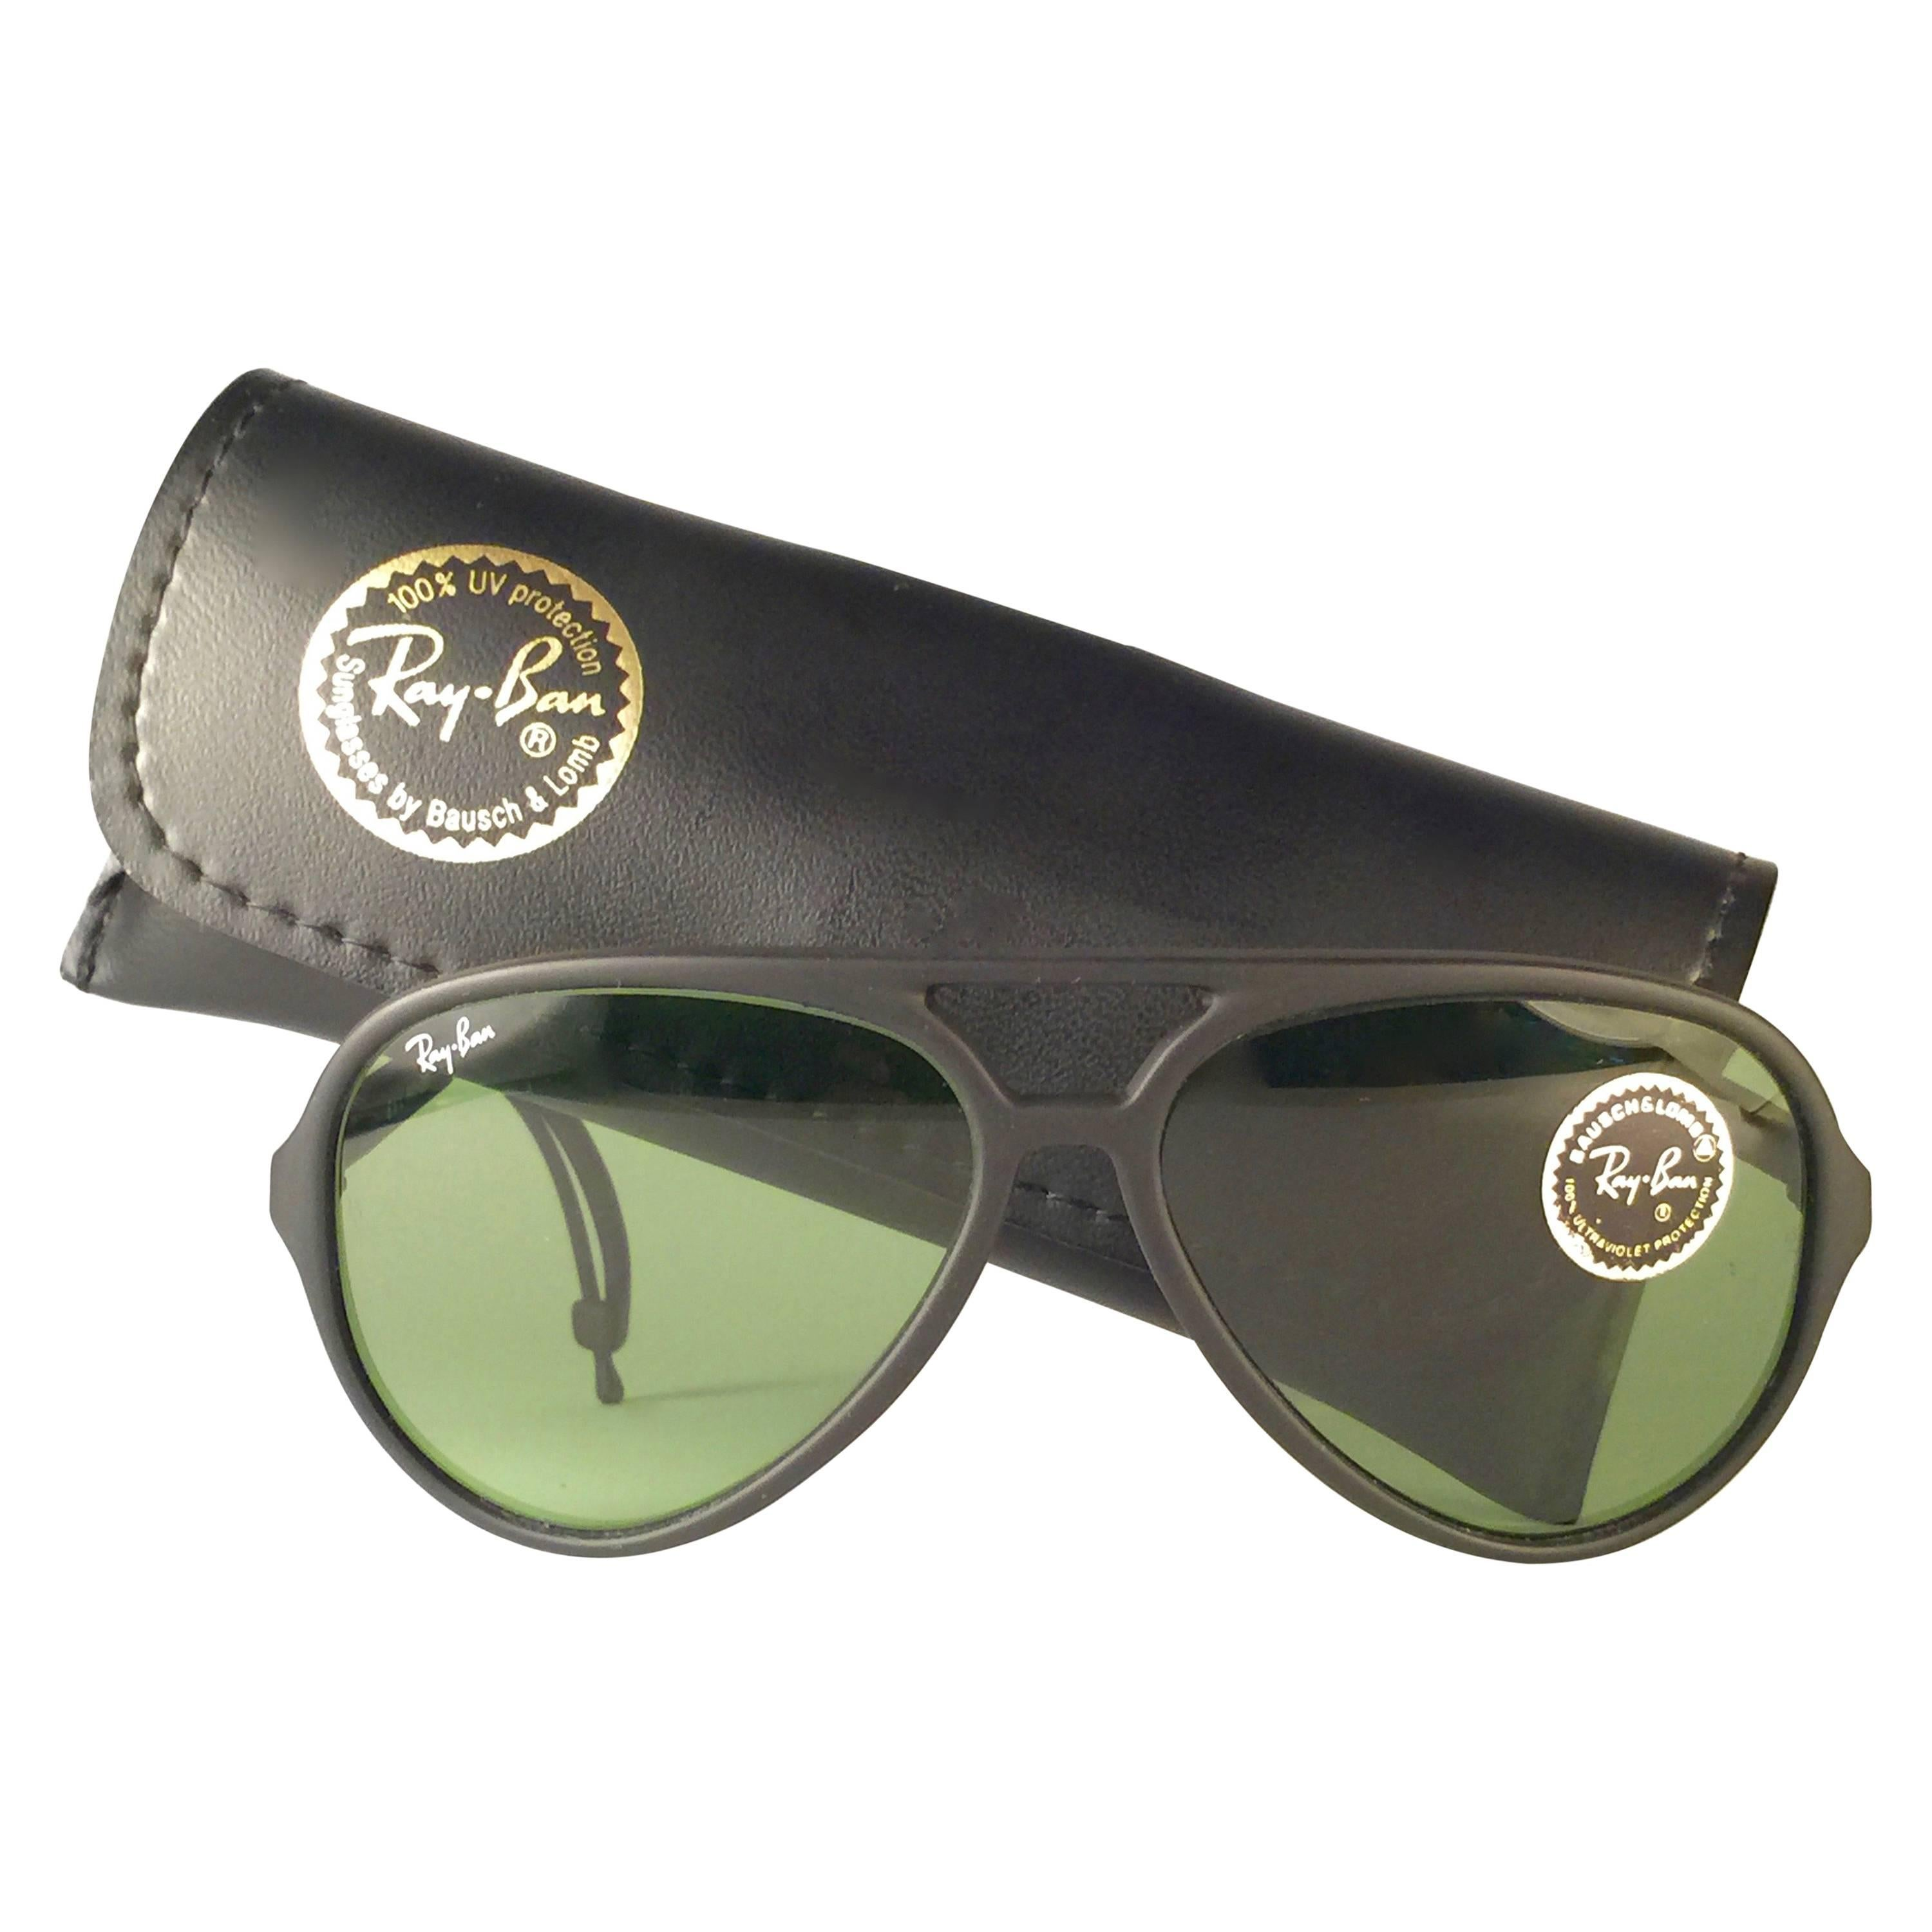 0375fa77847d9 New Vintage Ray Ban Sport Series 4 RB3 Green Lenses 1980 s B L Sunglasses  For Sale at 1stdibs